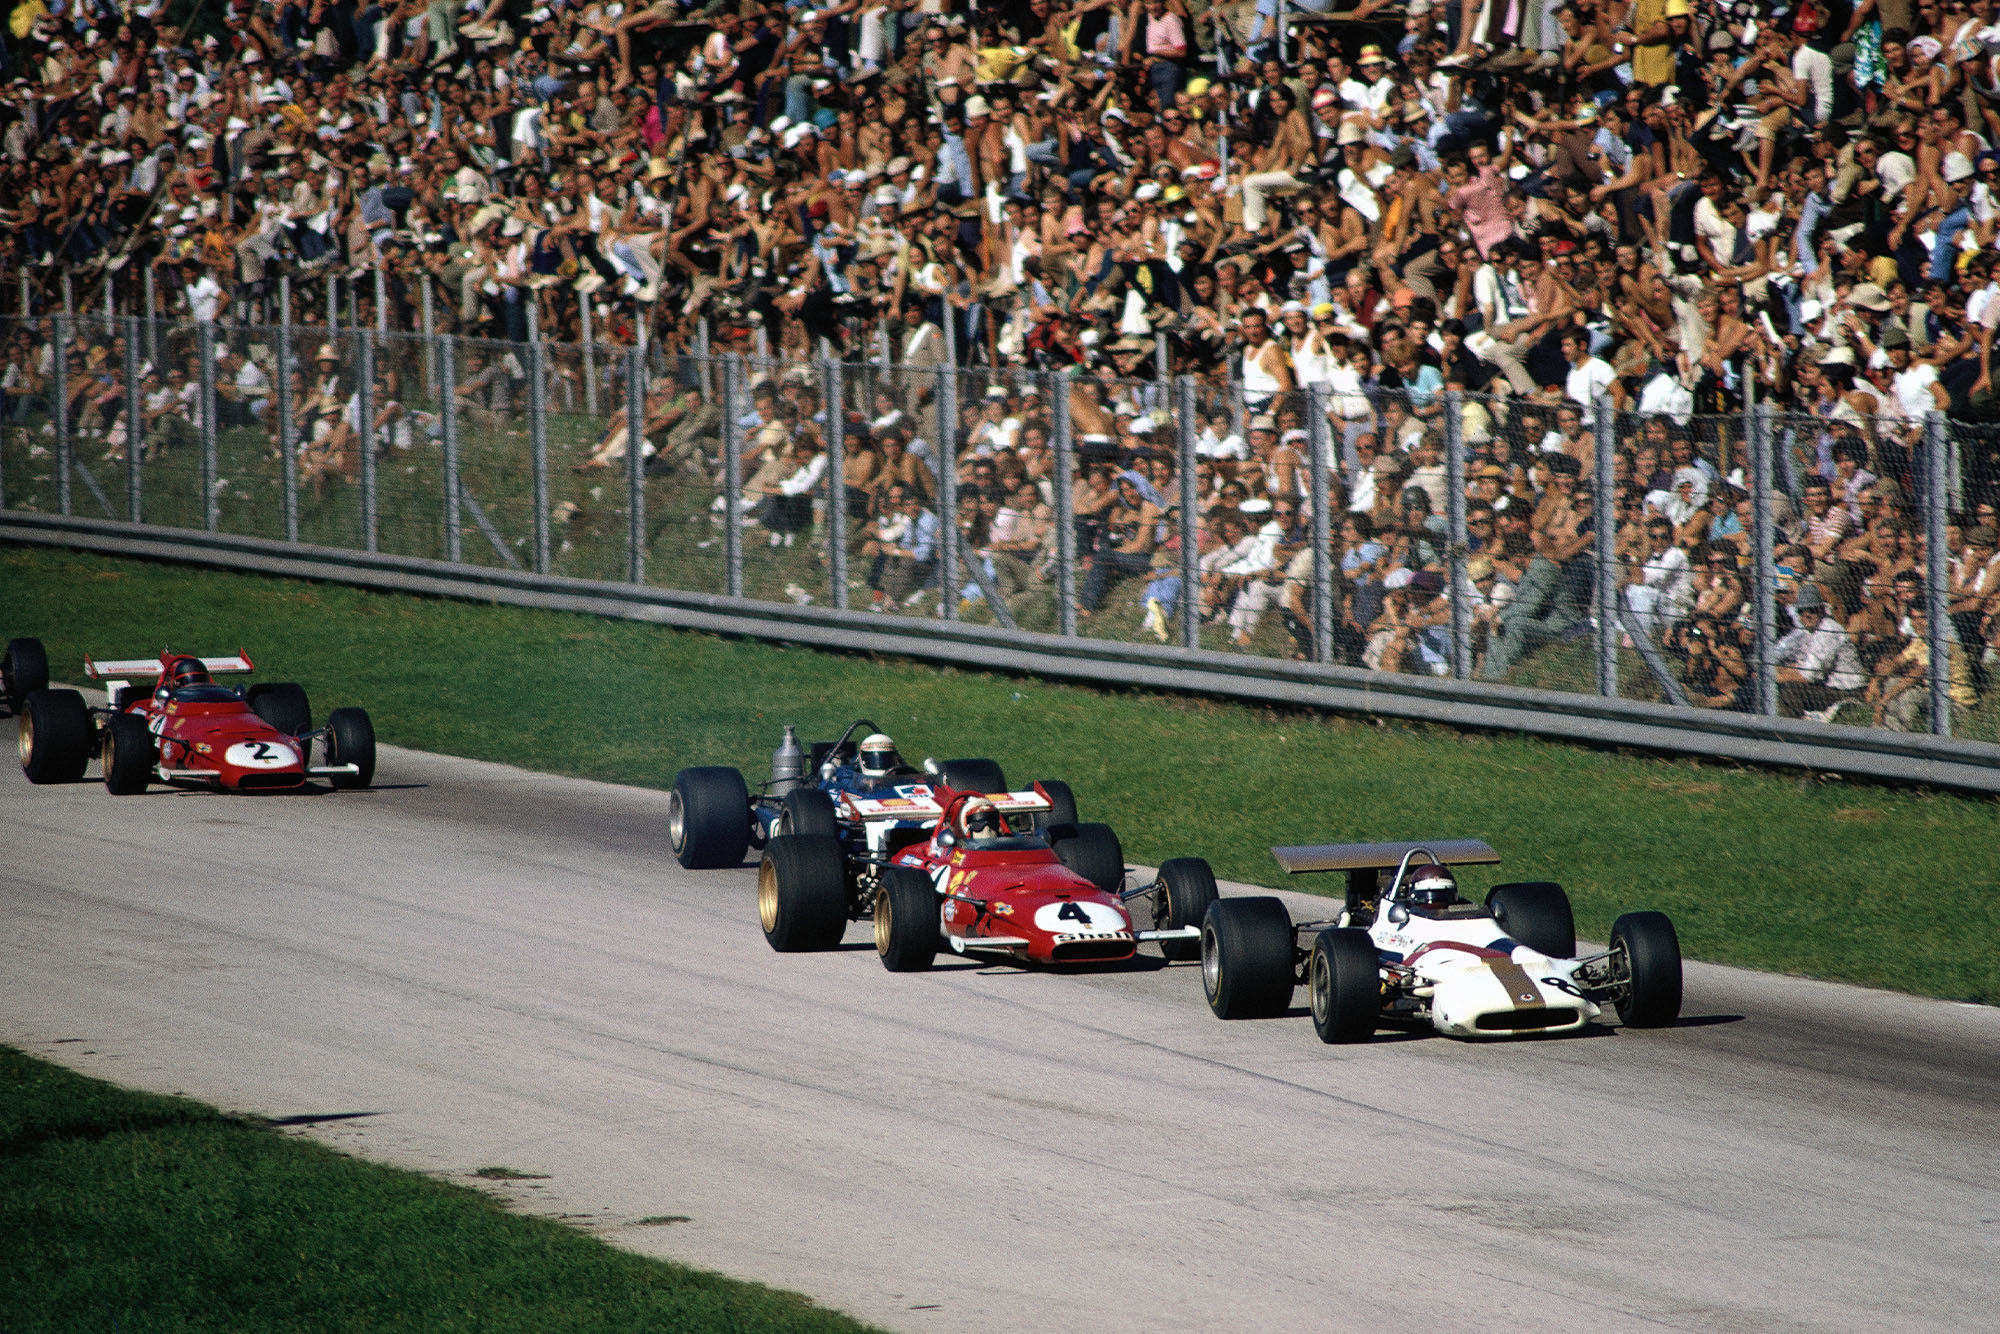 Italian GP 1970: Jackie Oliver, BRM P153 leading Clay Regazzoni, Ferrari 312B, Jackie Stewart, March 701 Ford and Jacky Ickx, Ferrari 312B.